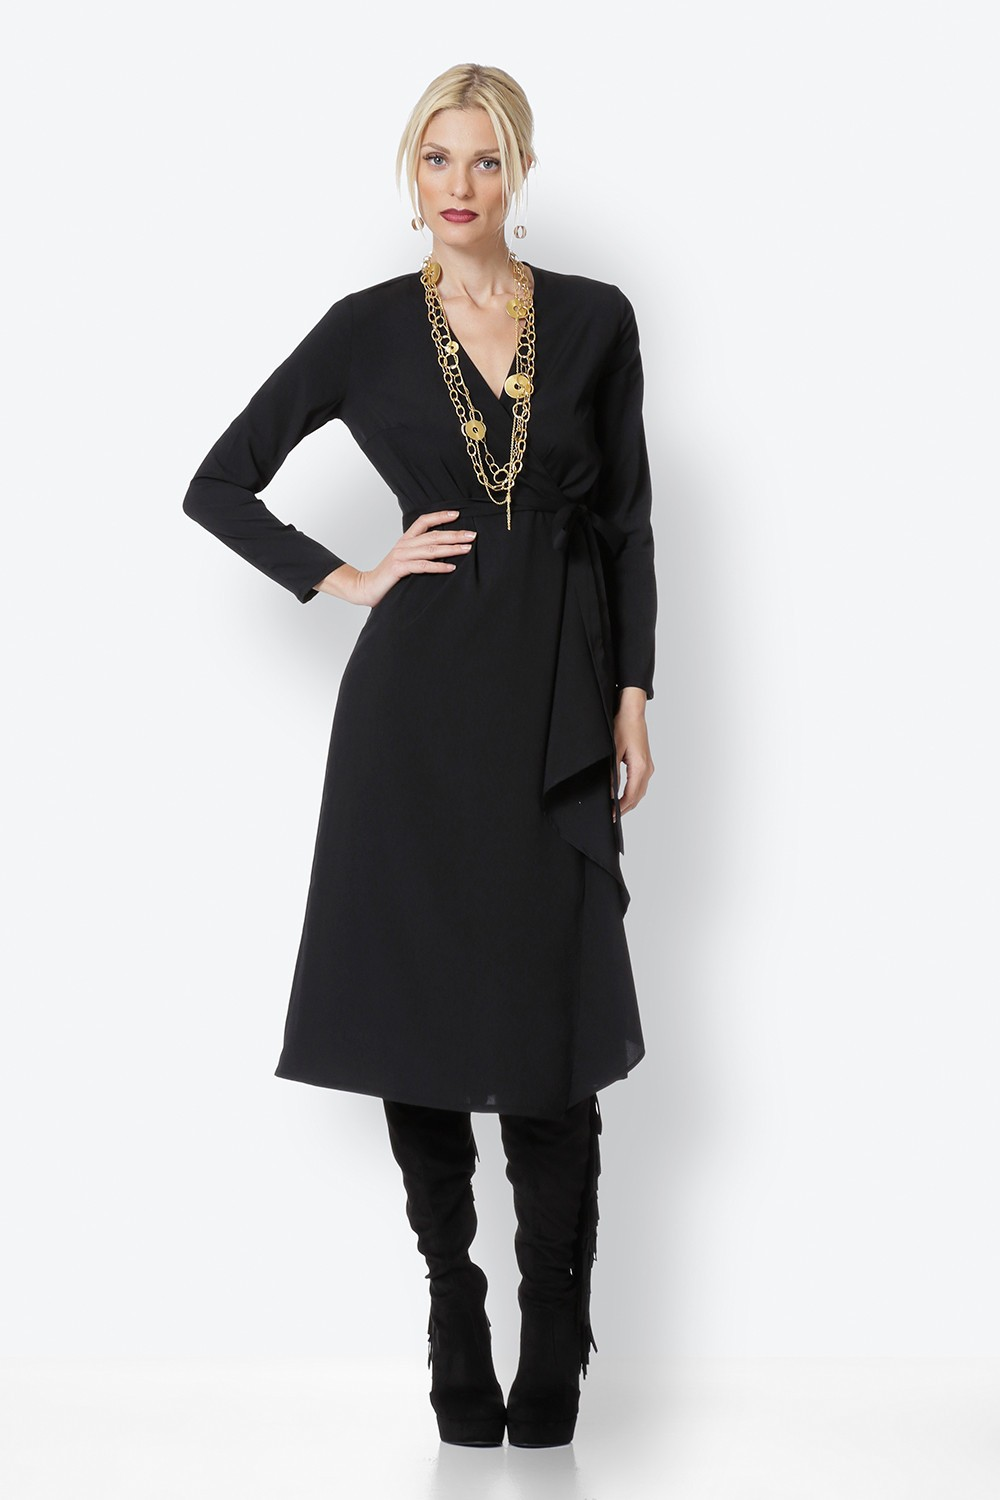 BLACK CLOS DRESS